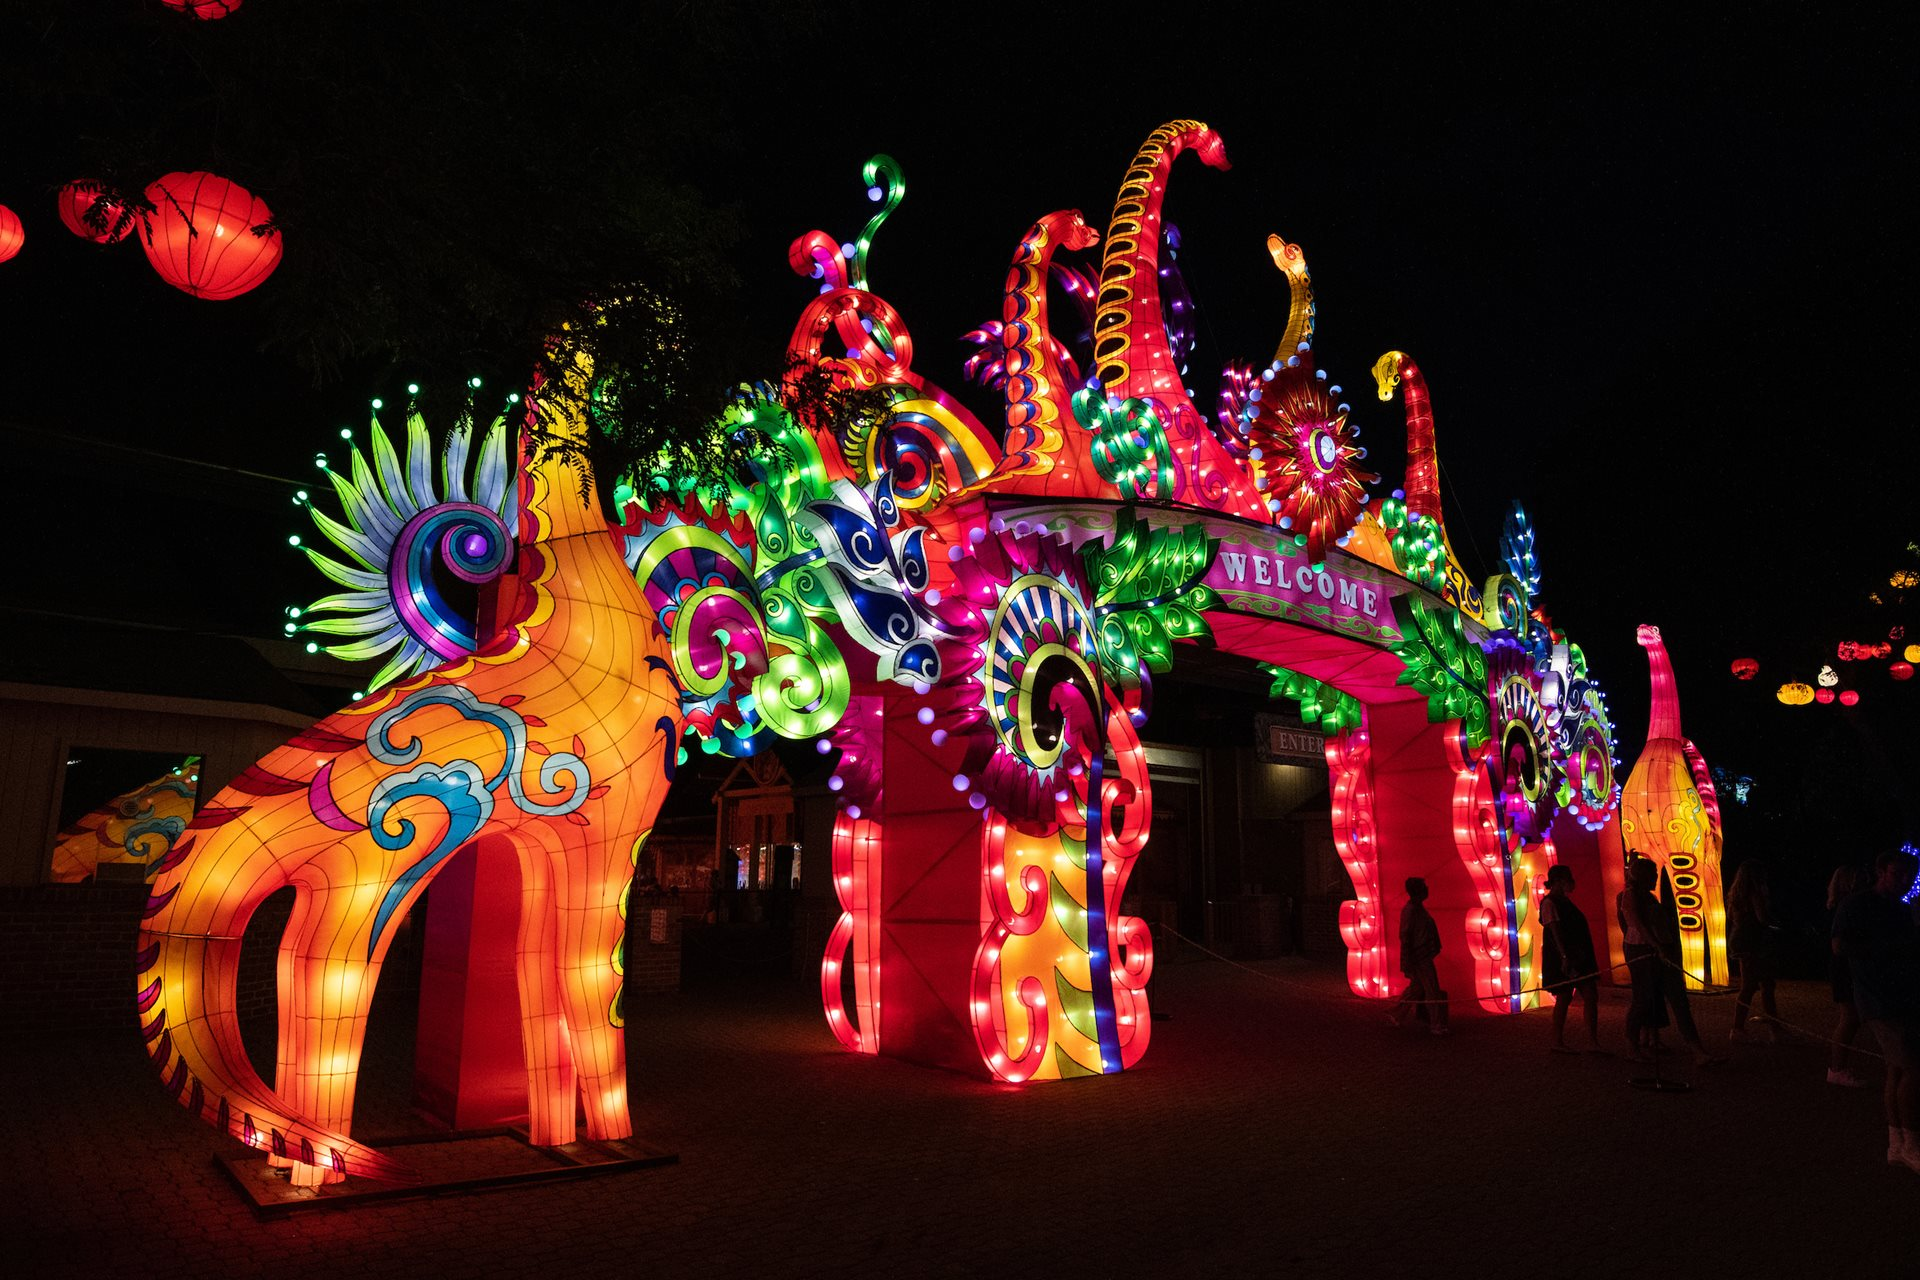 Cleveland Metroparks Zoo Offers Limited Drive-Through Experience at Asian Lantern Festival